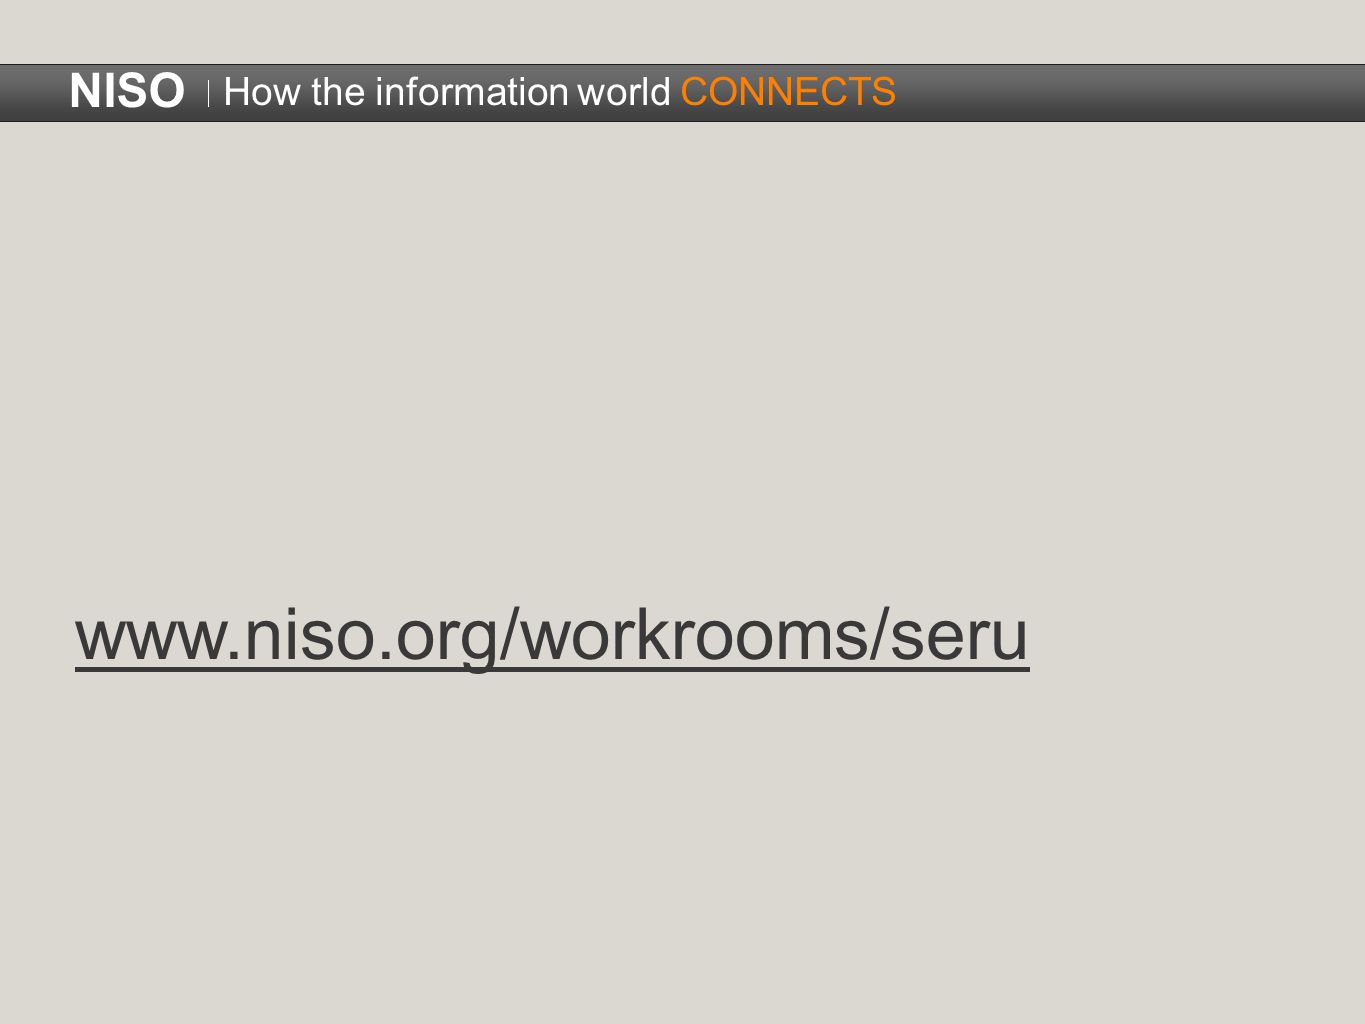 www.niso.org/workrooms/seru NISO How the information world CONNECTS